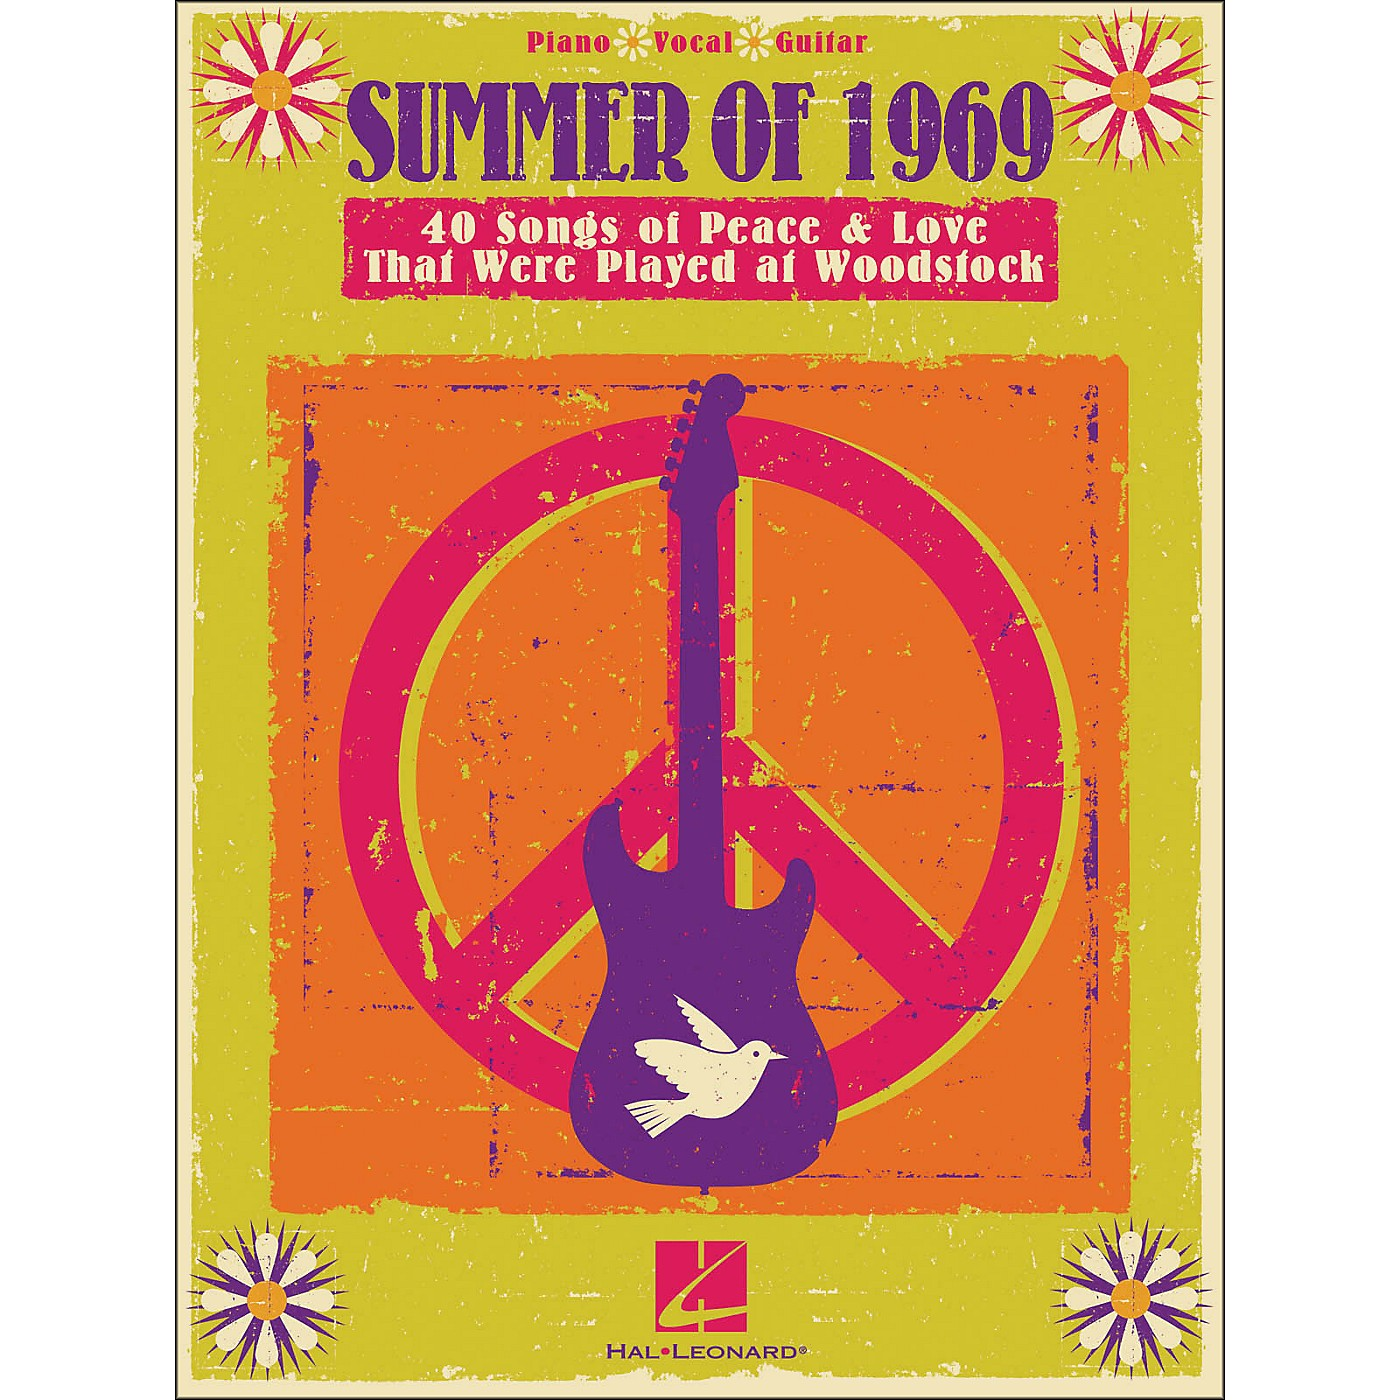 Hal Leonard Summer Of 1969 - Songs Of Peace & Love That Were Played At Woodstock arranged for piano, vocal, and guitar (P/V/G) thumbnail